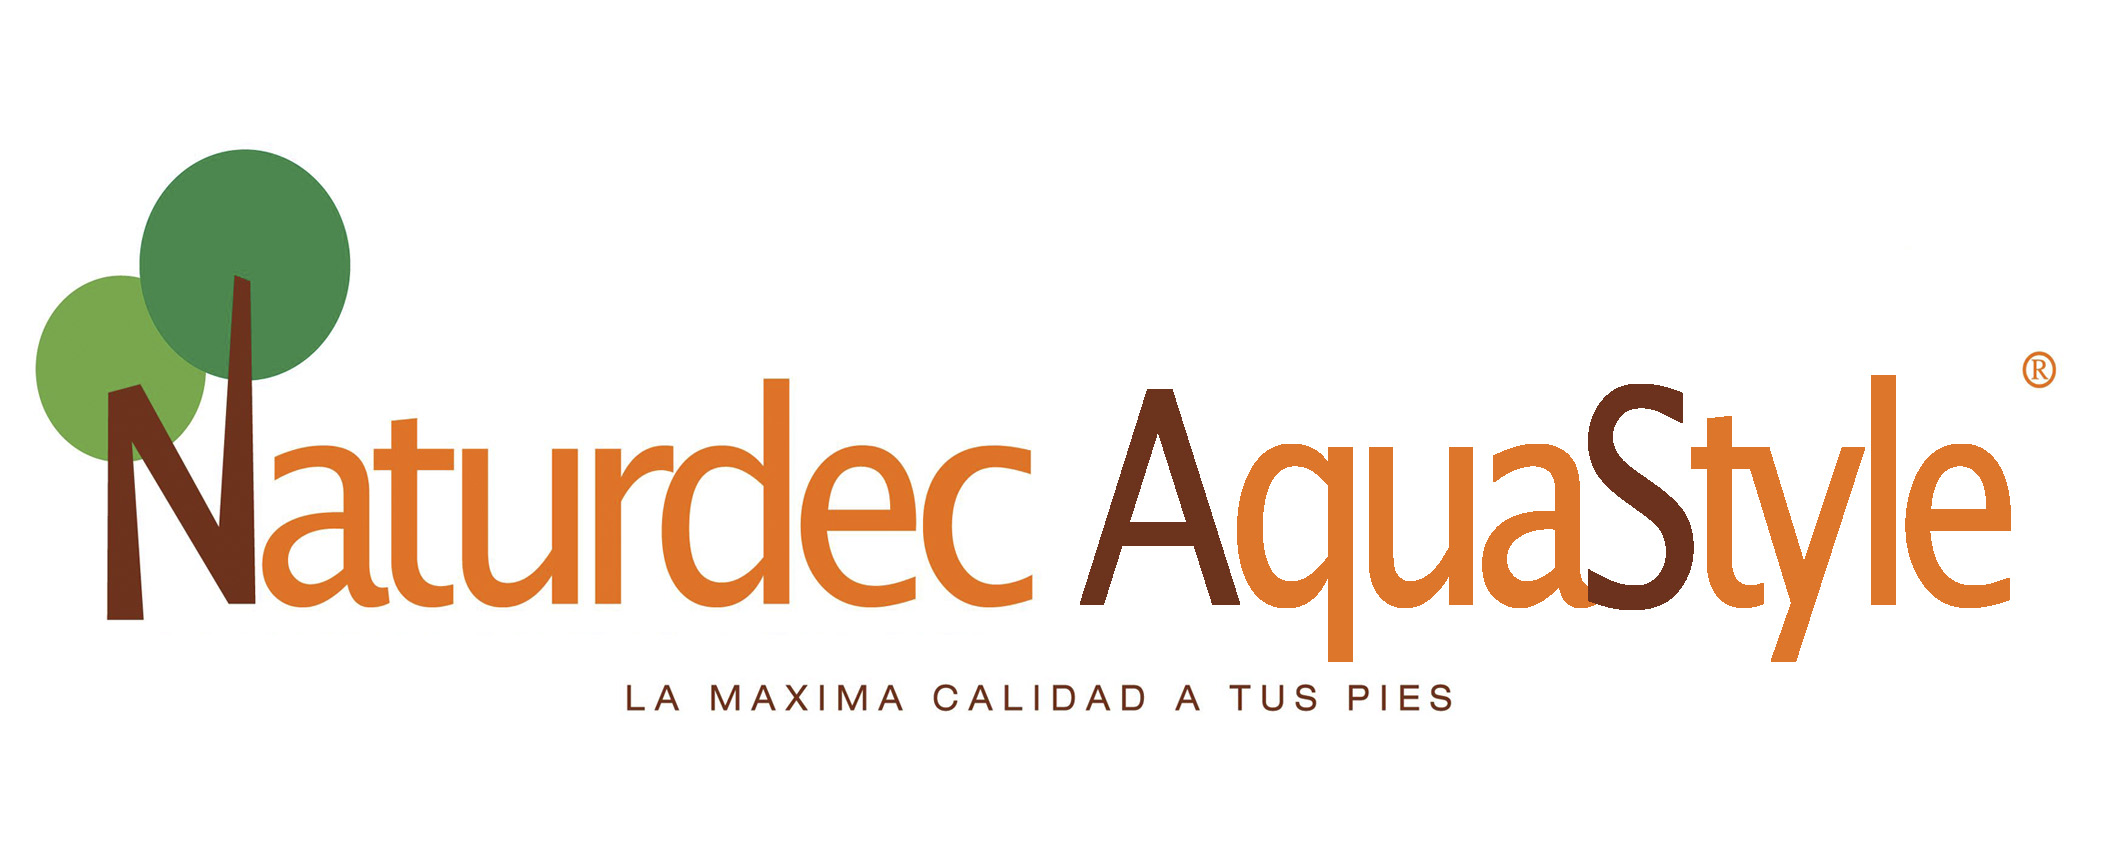 Naturdec Aquastyle copia